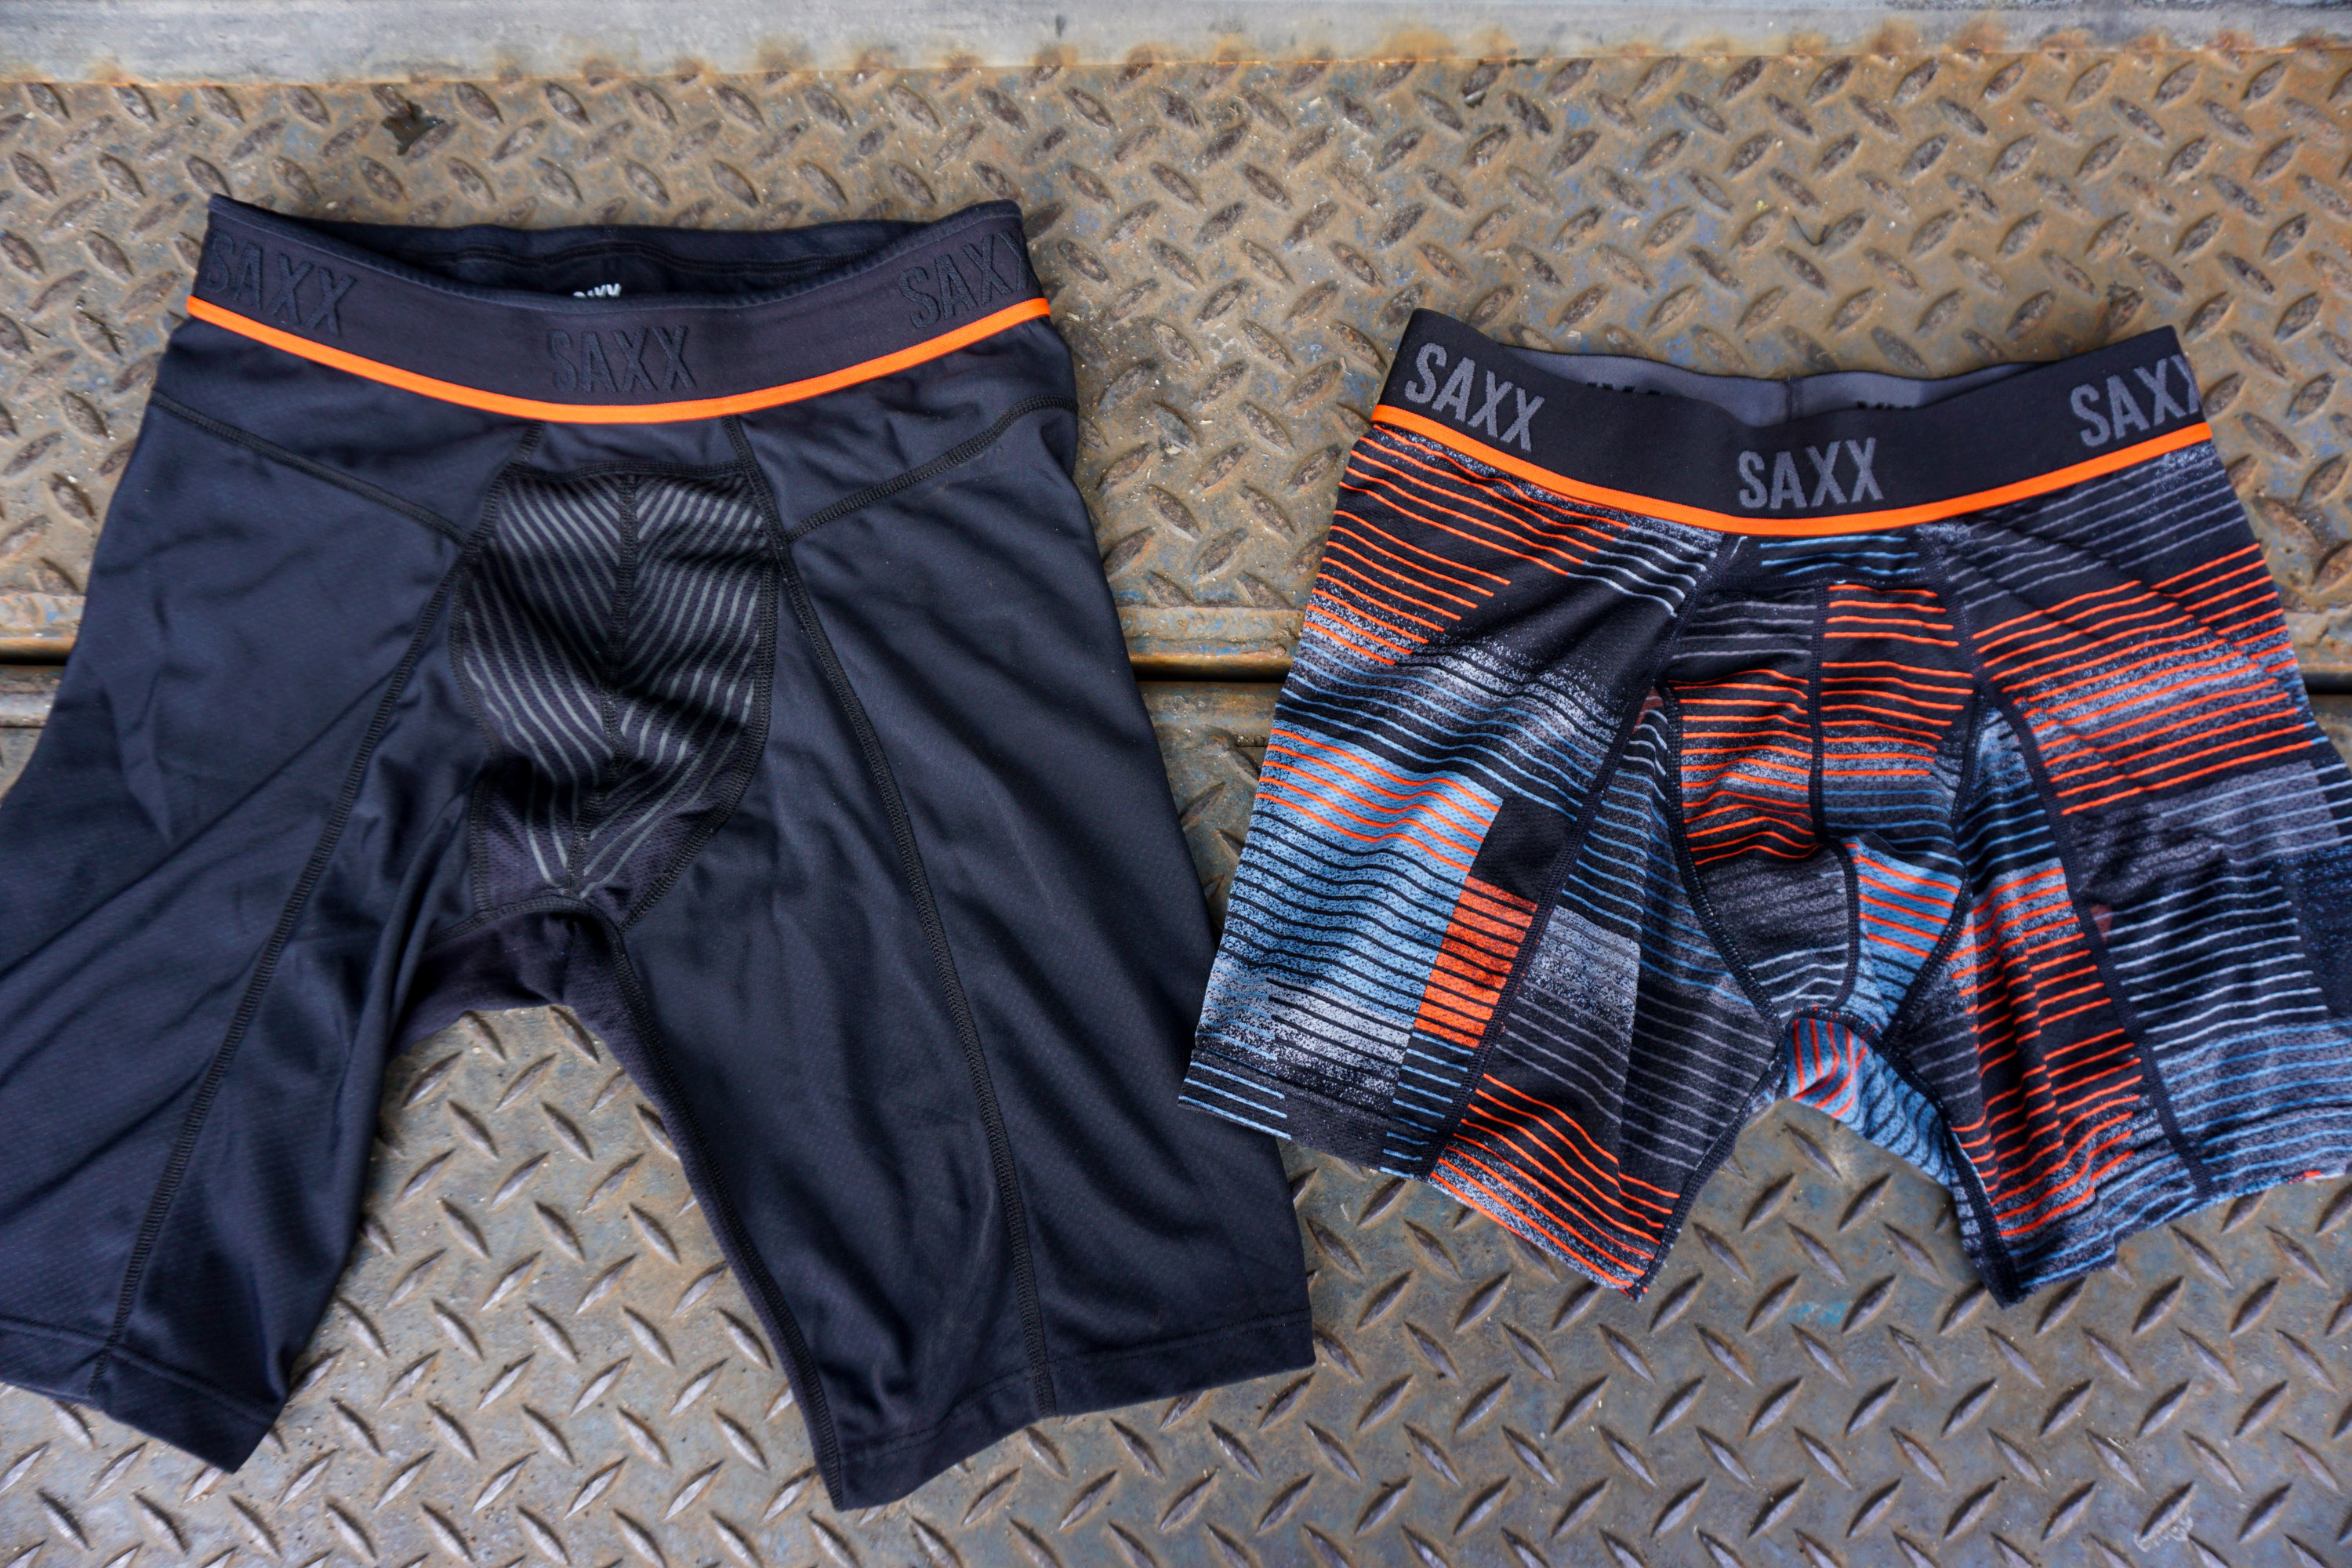 SAXX Hyperdrive and Kinetic HD Underwear